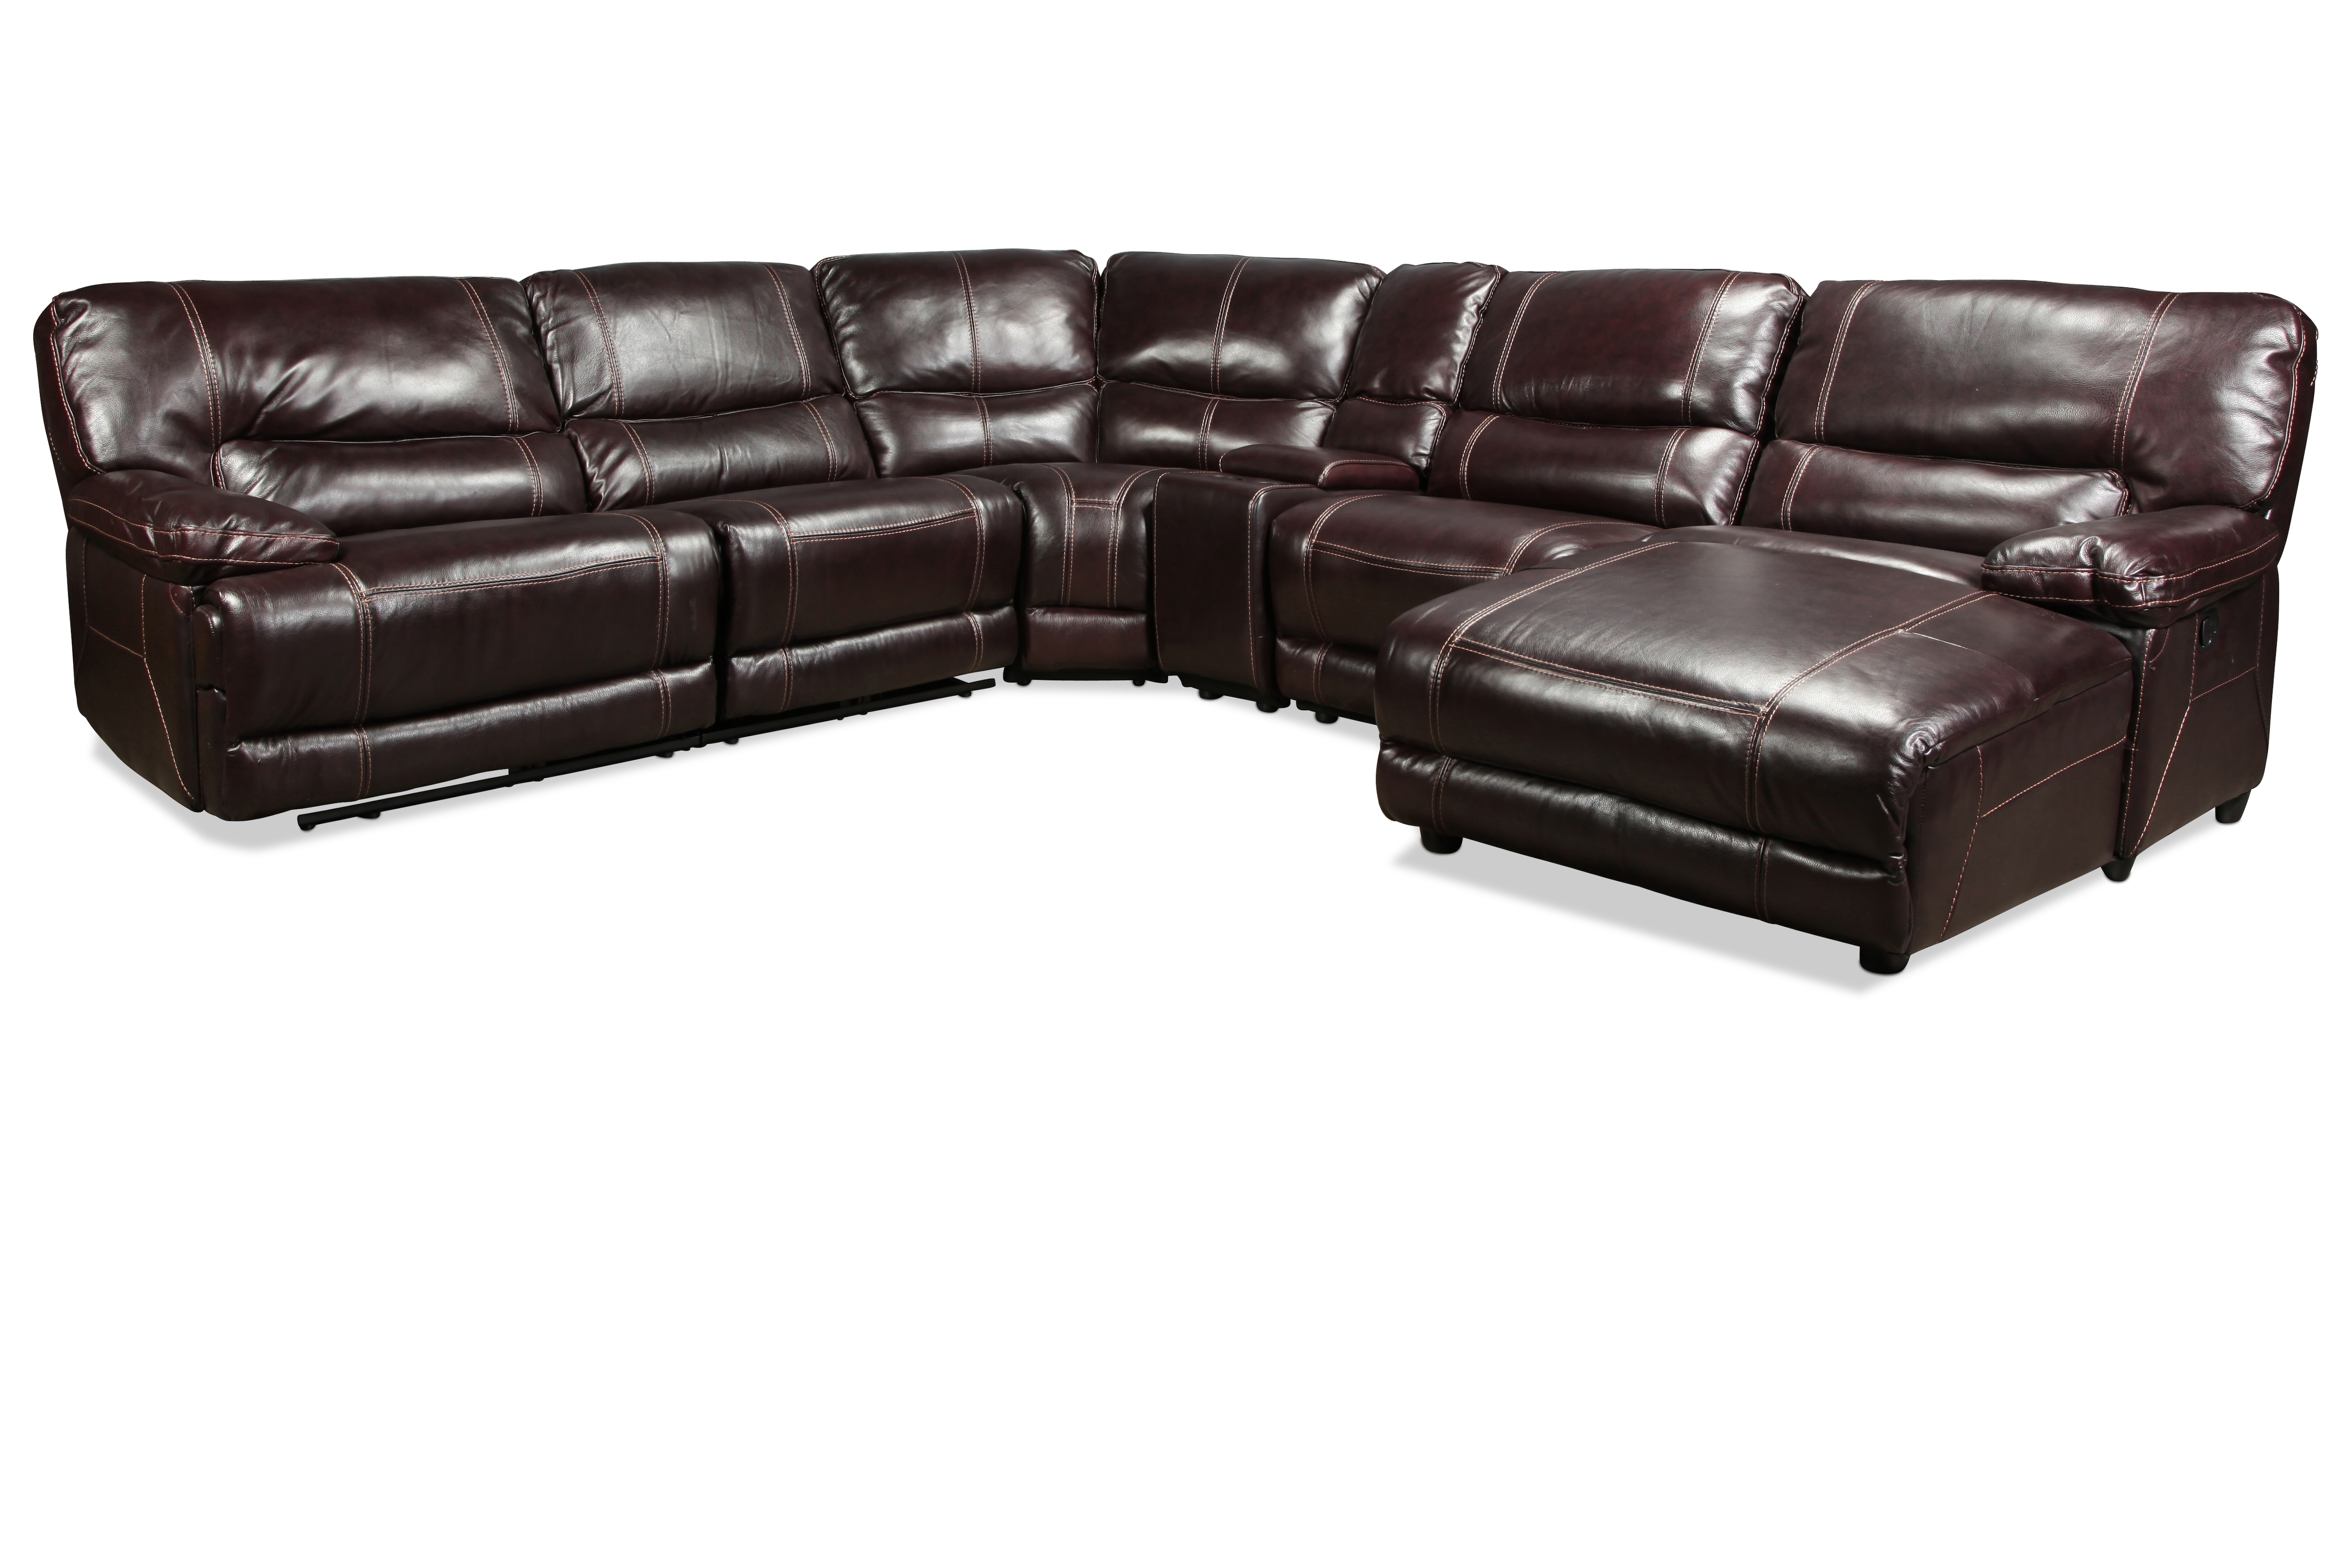 Sectionals | Levin Furniture With Benton 4 Piece Sectionals (Image 23 of 25)